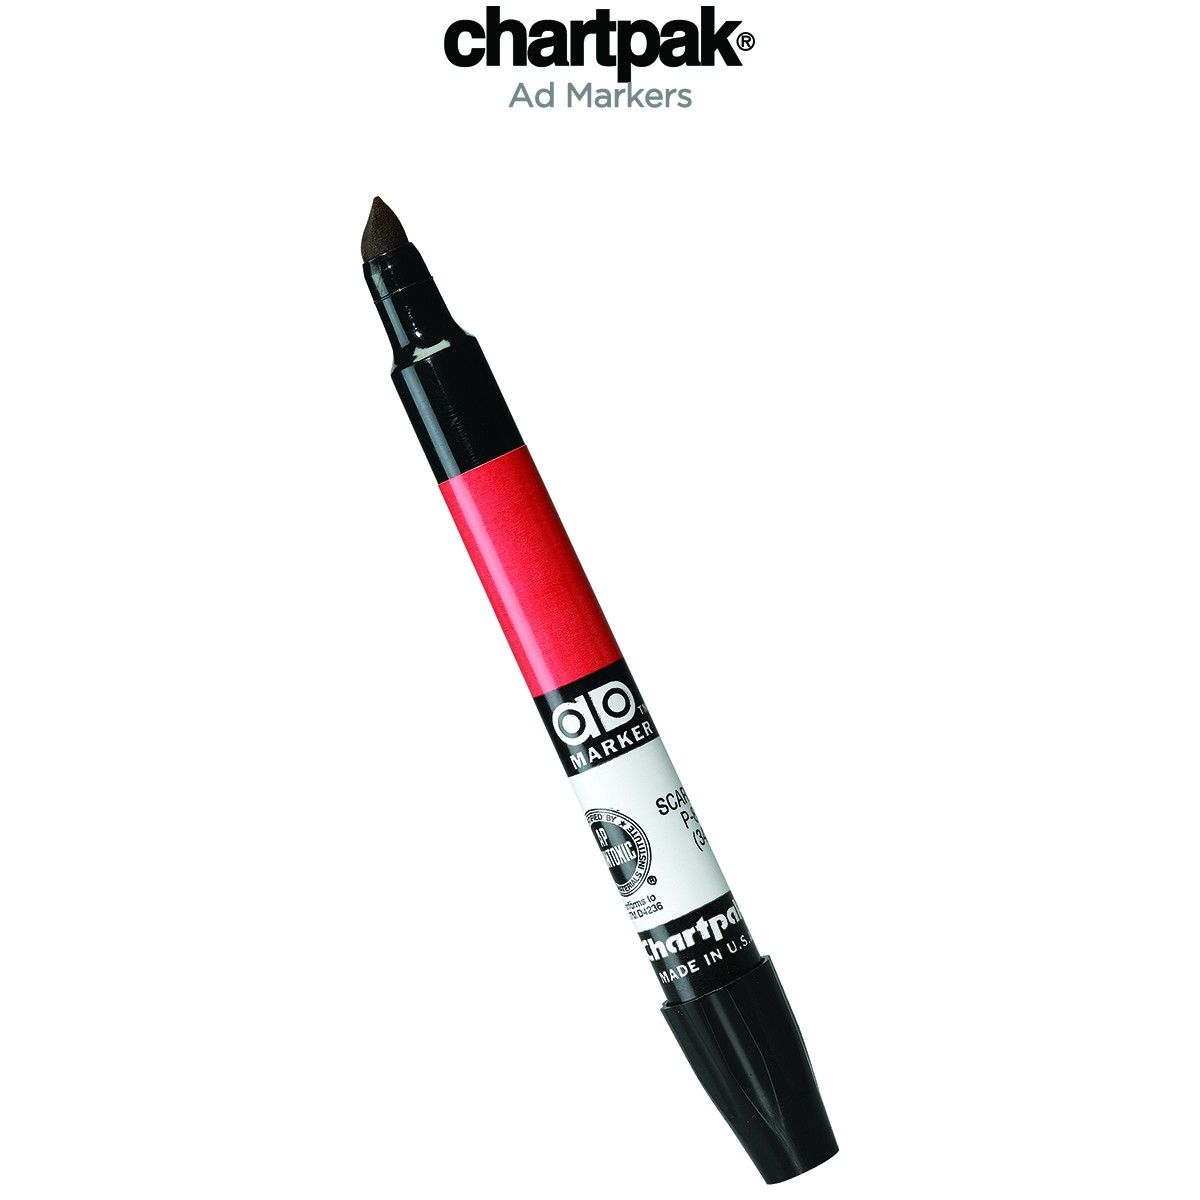 Chartpak Ad Markers